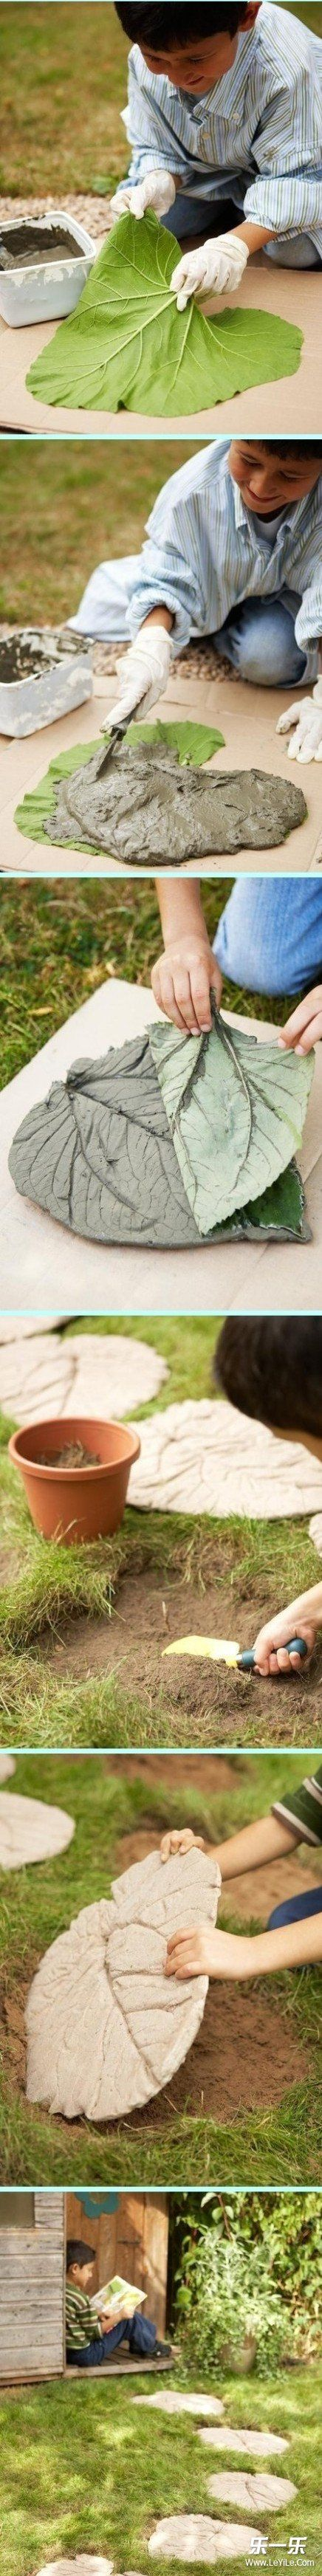 pin by milagros feliciano on gardens and more | pinterest | garten